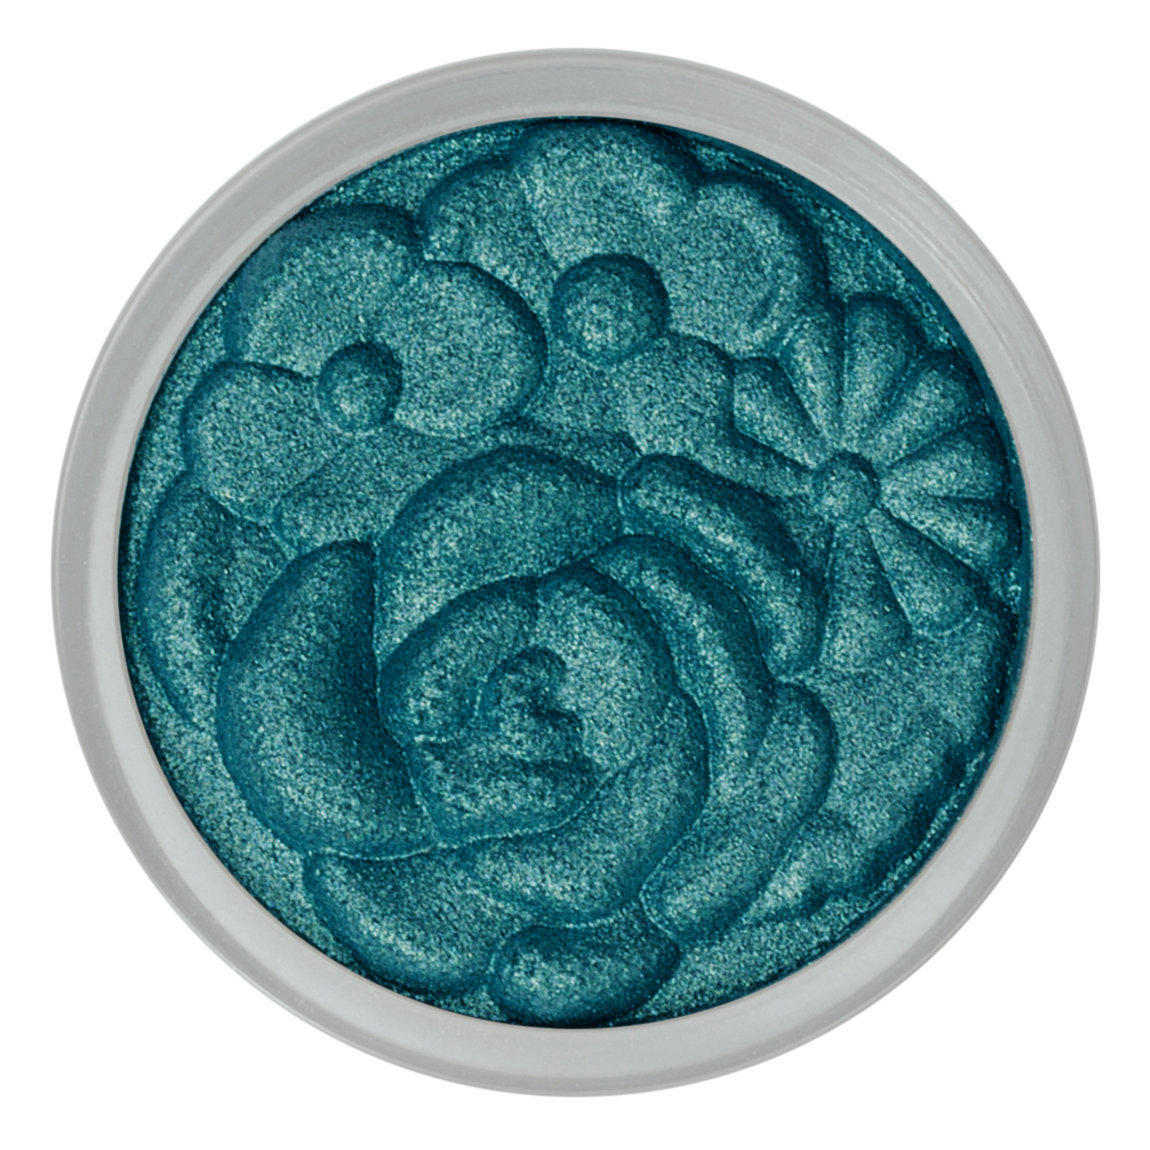 Anna Sui Eye & Face Color V V900 product swatch.